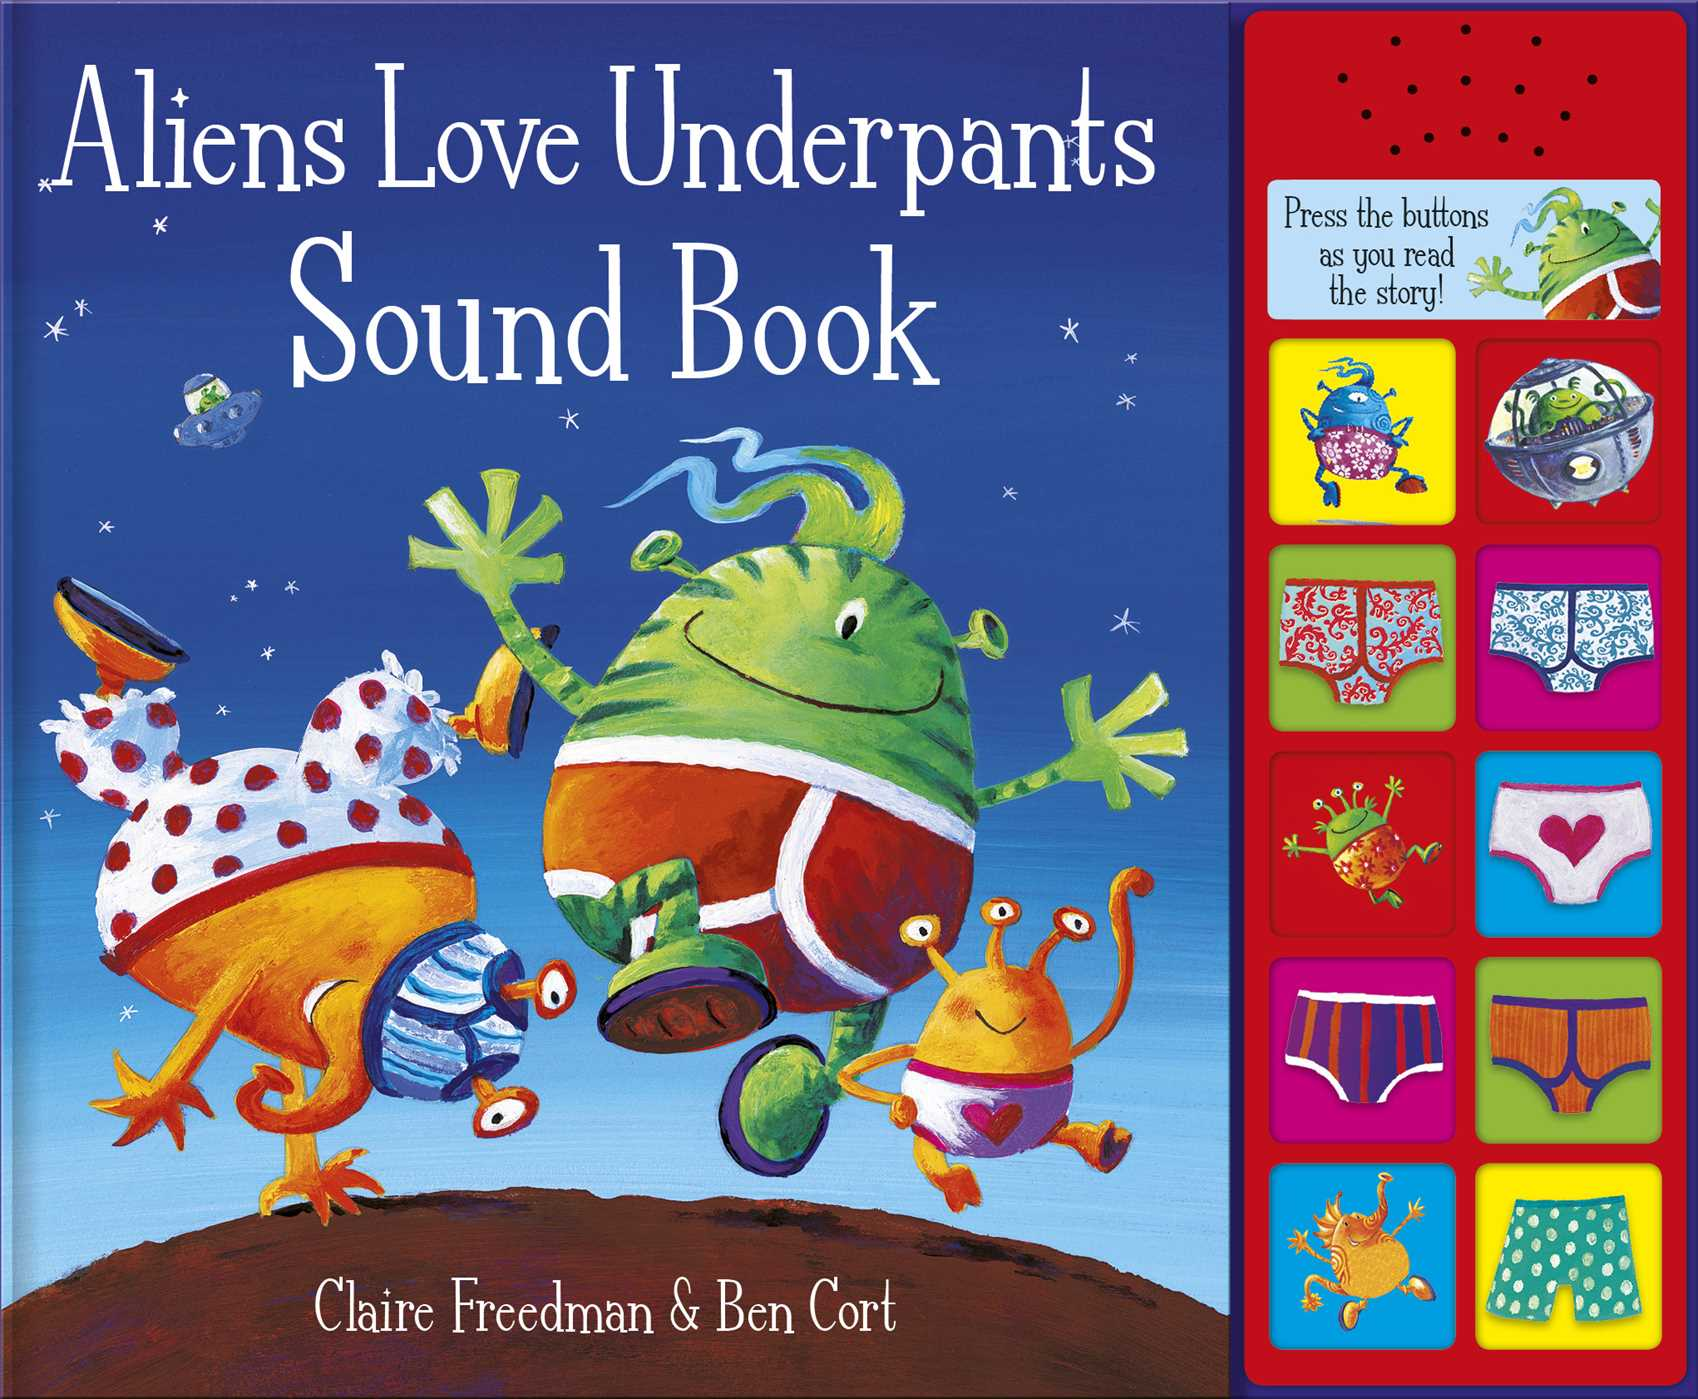 Ben cort official publisher page simon schuster india book cover image jpg aliens love underpants sound book fandeluxe Image collections